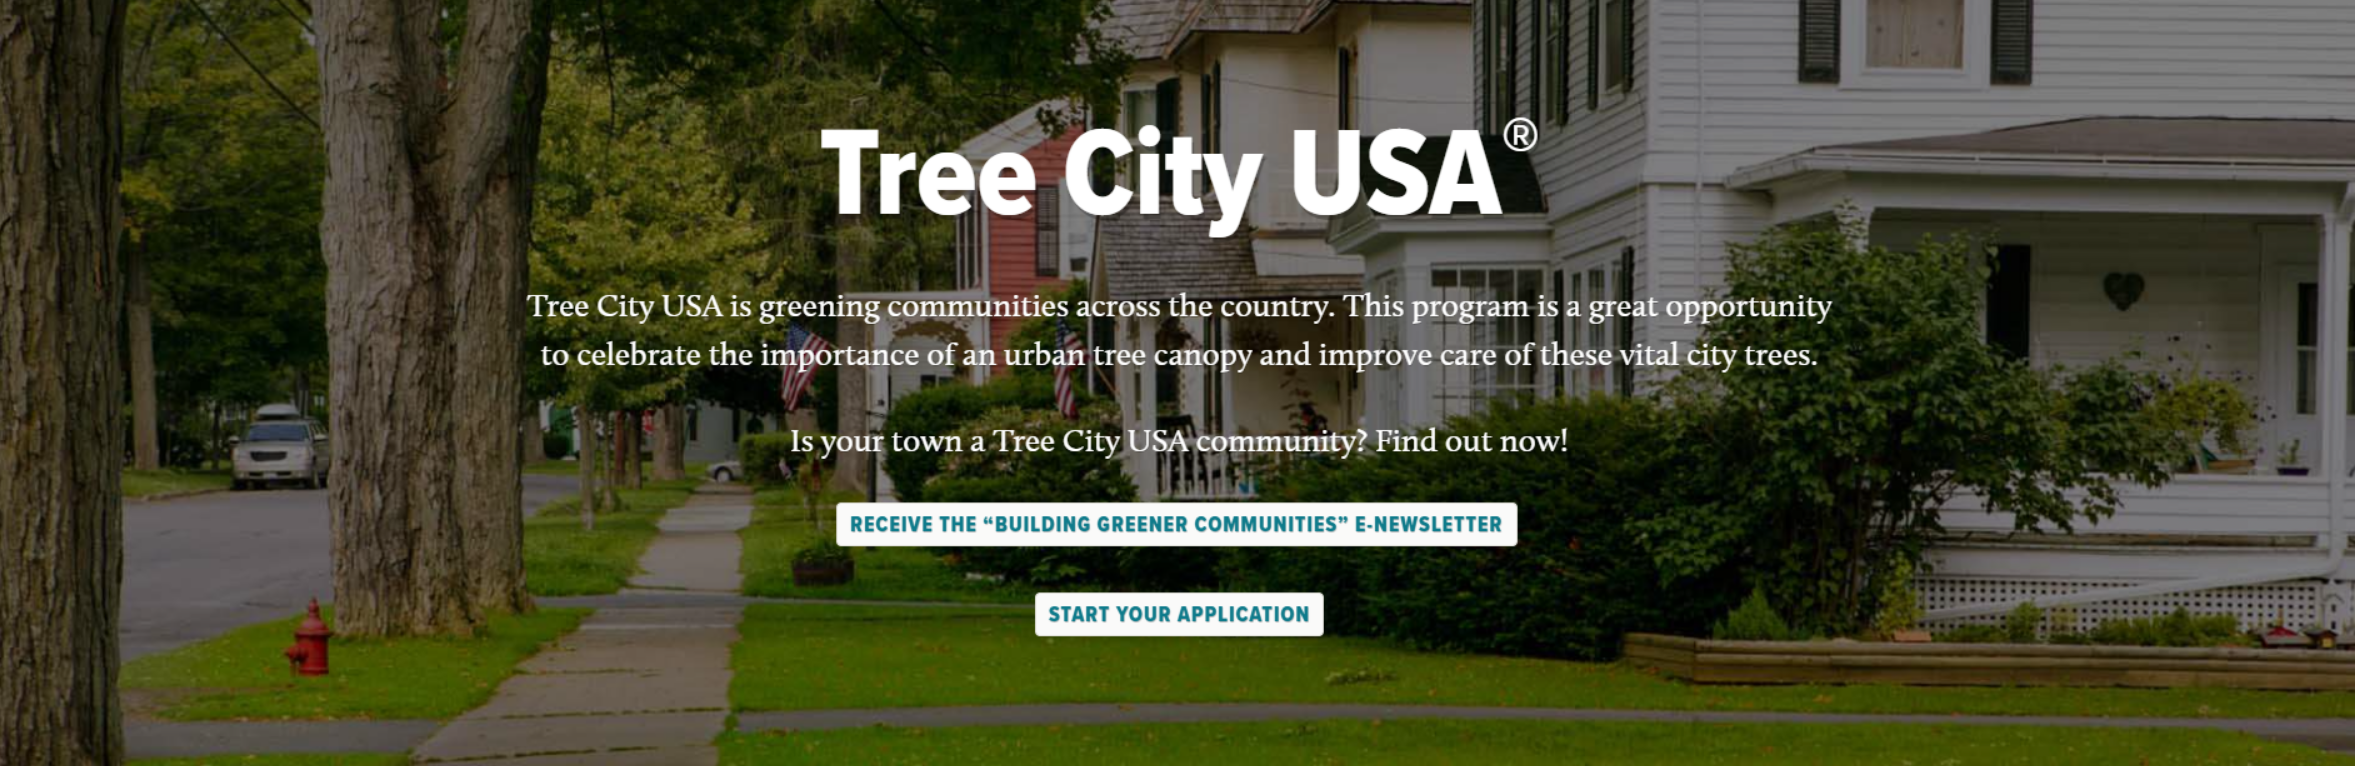 what is tree city usa